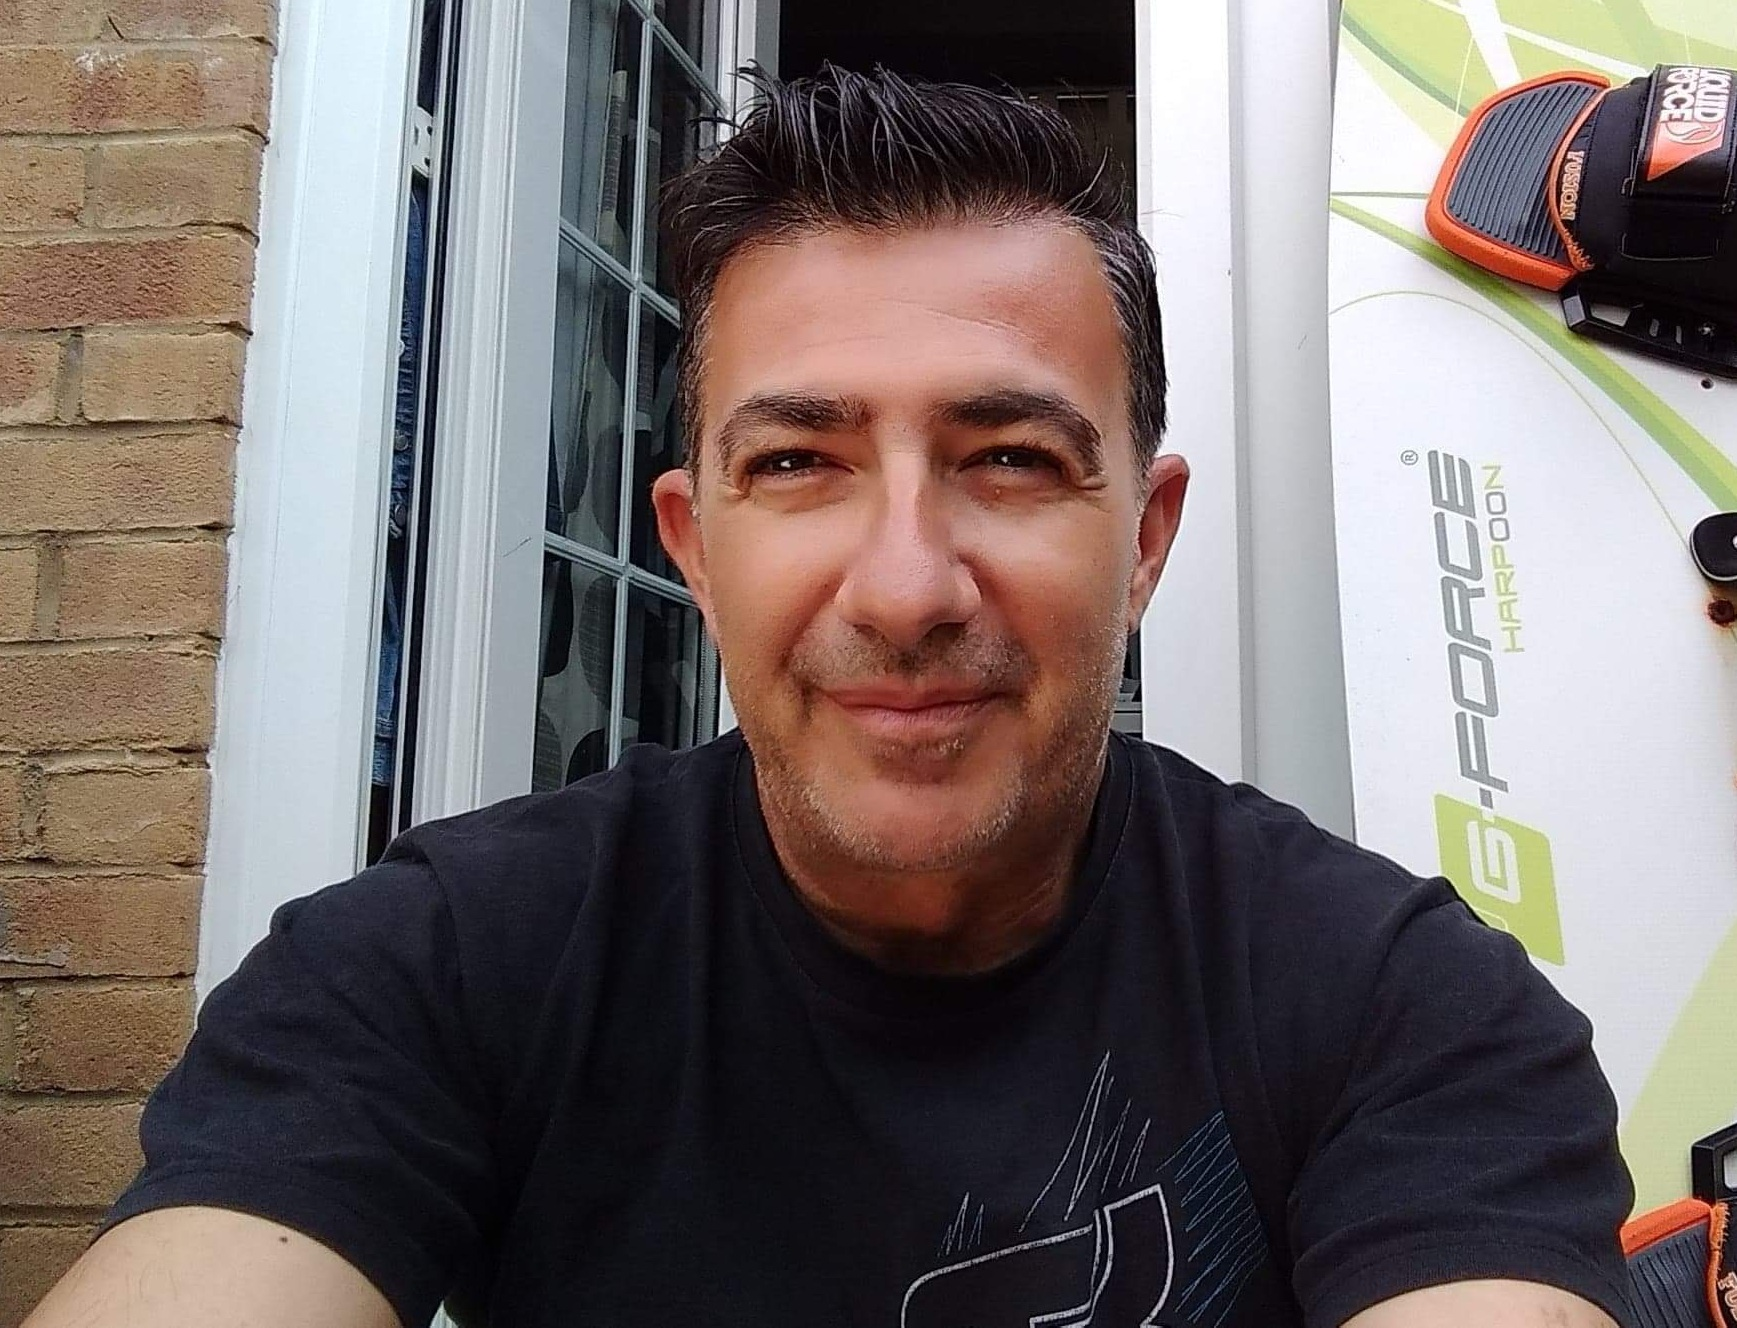 George Dimou is a Very Experienced and Qualified Kitesurf Instructor - Level 3 Head Instructor IKO